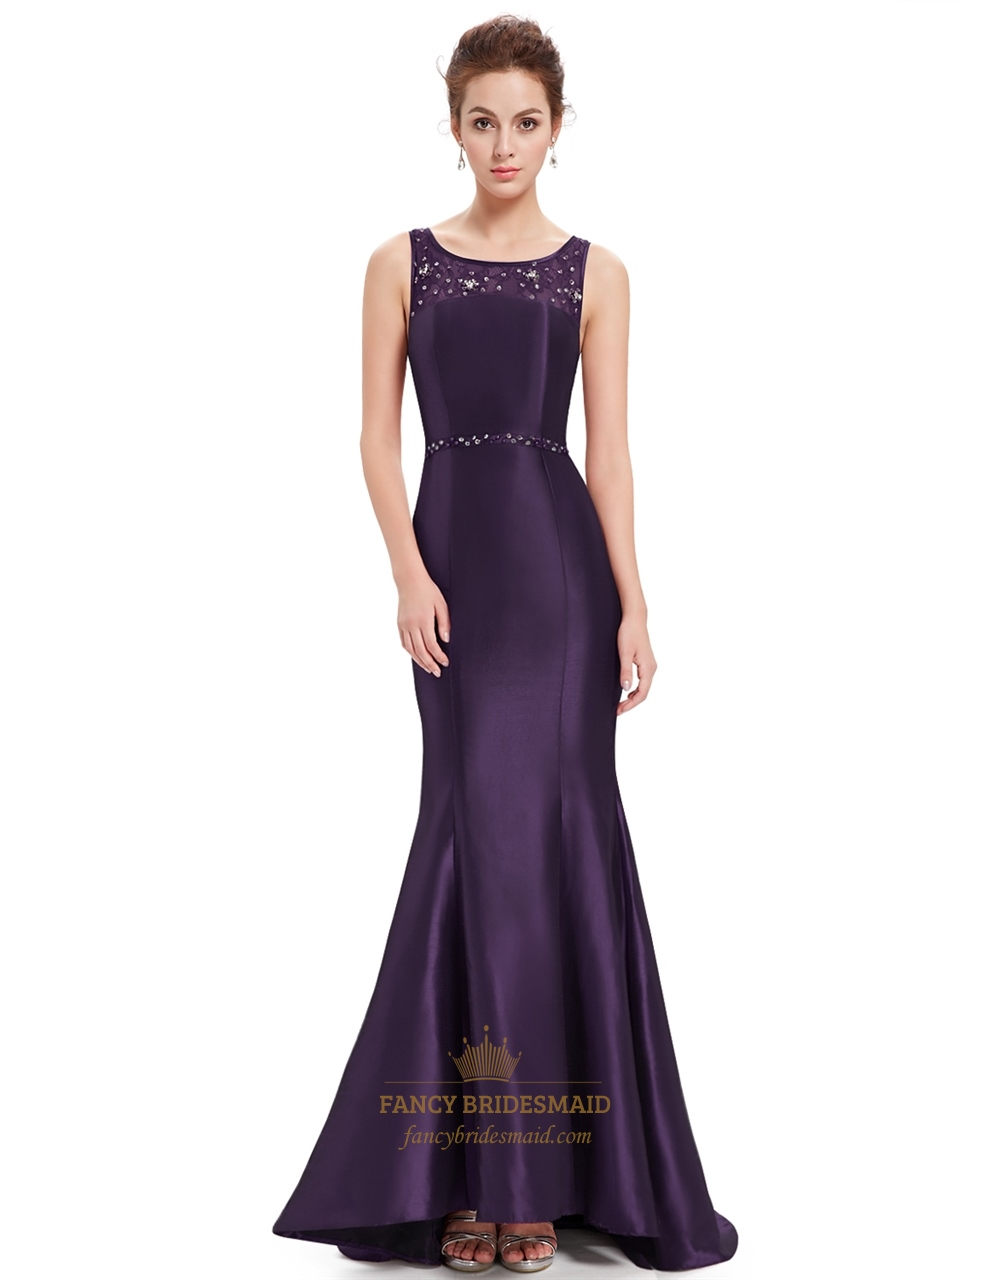 Find beaded neck dress at ShopStyle. Shop the latest collection of beaded neck dress from the most popular stores - all in one place.